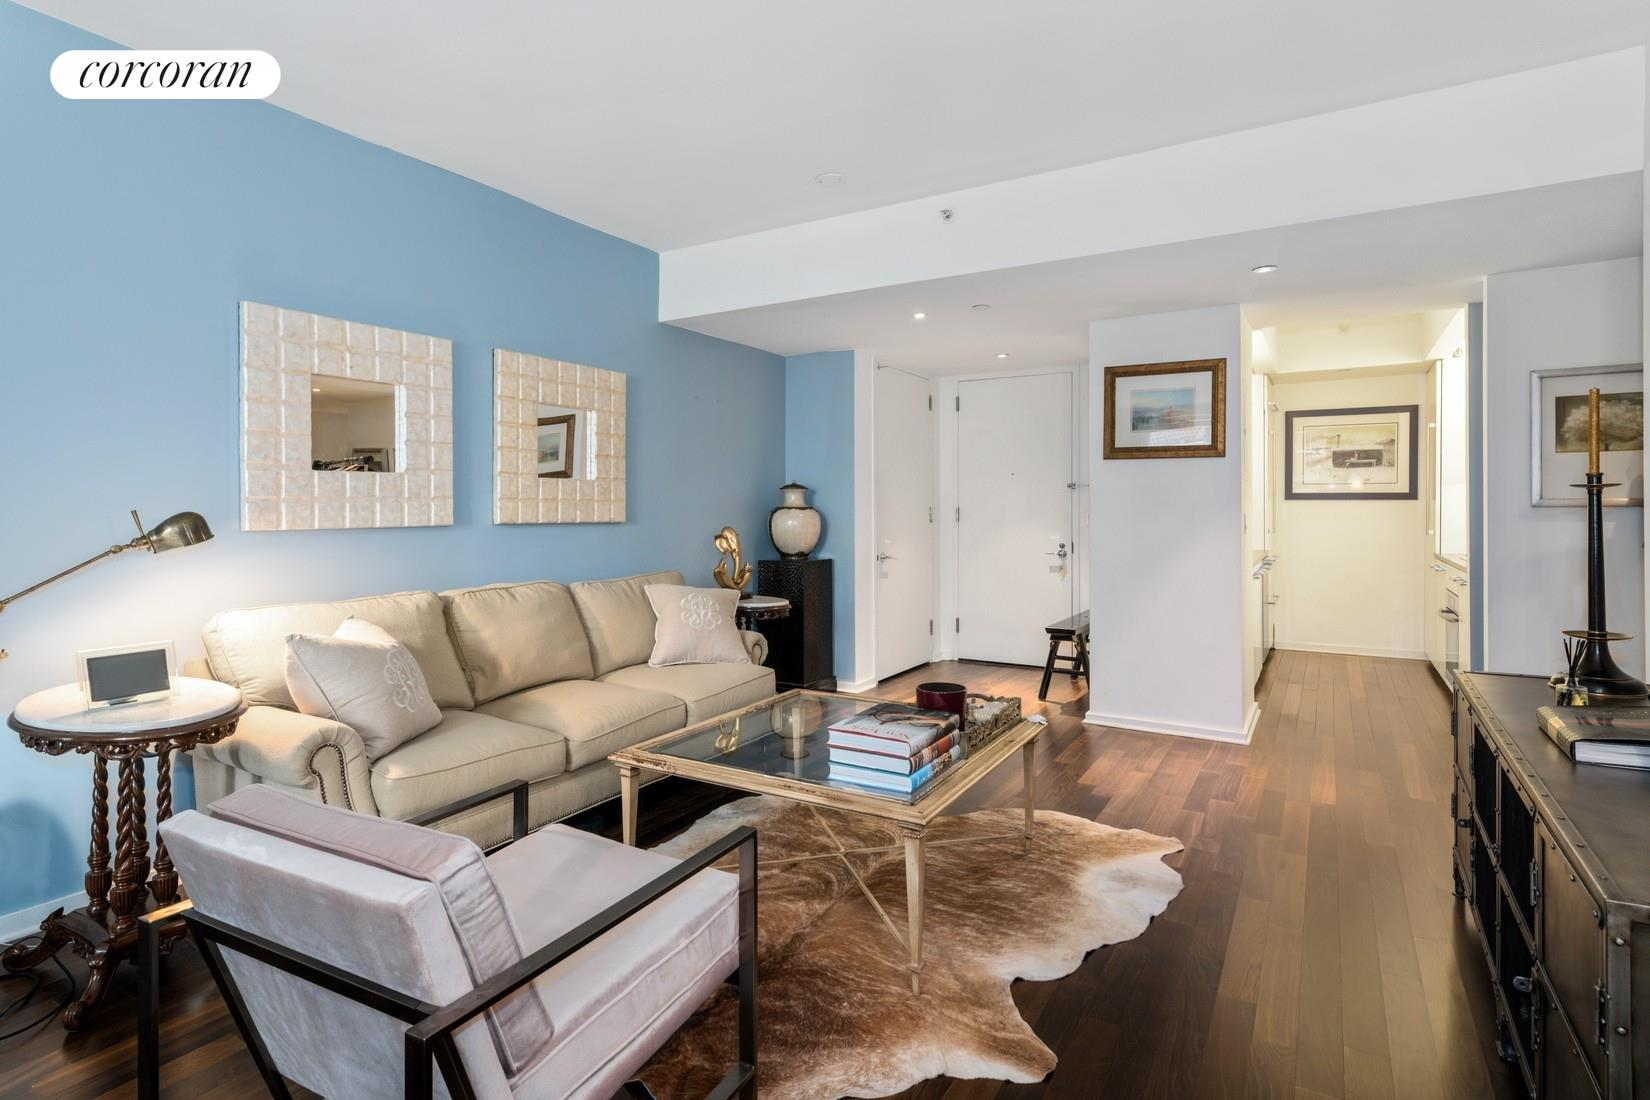 Apartment for sale at 340 East 23rd Street, Apt 4E